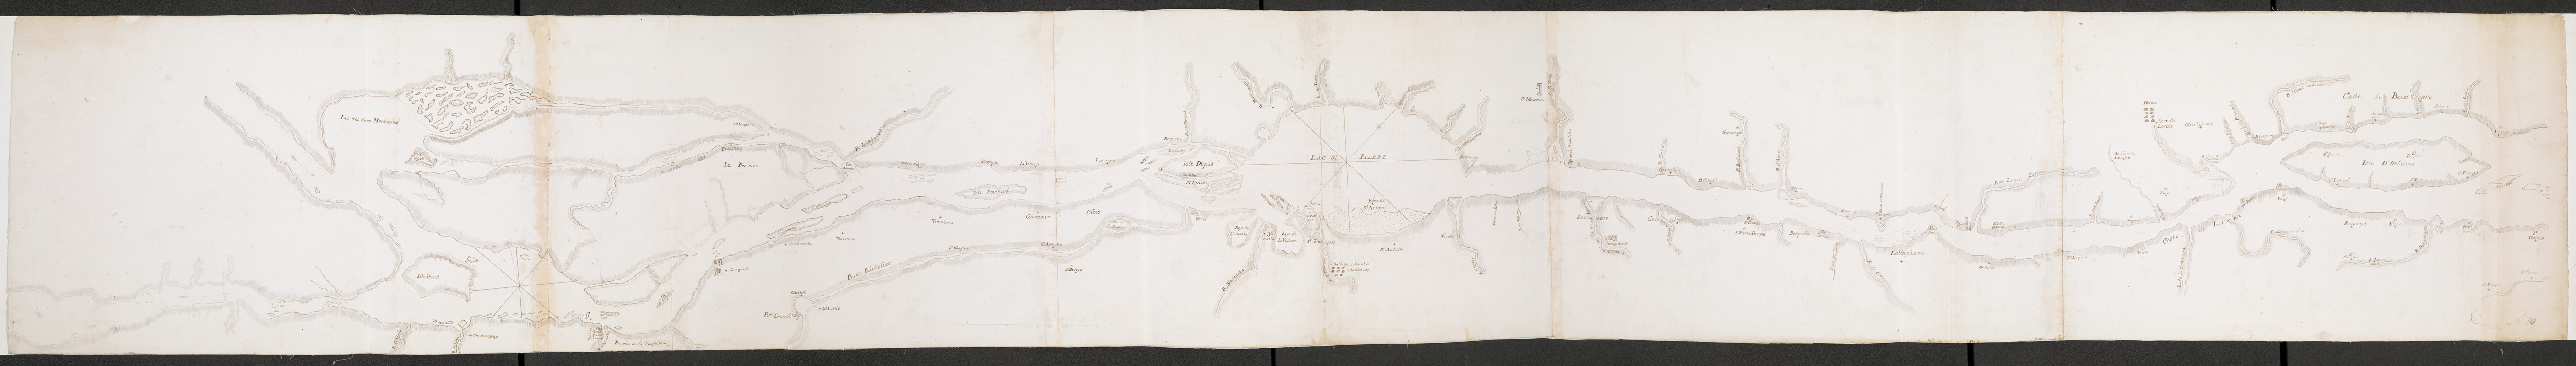 [An unfinished chart of the Saint Lawrence River from Perrot Island to the Island of Orleans]